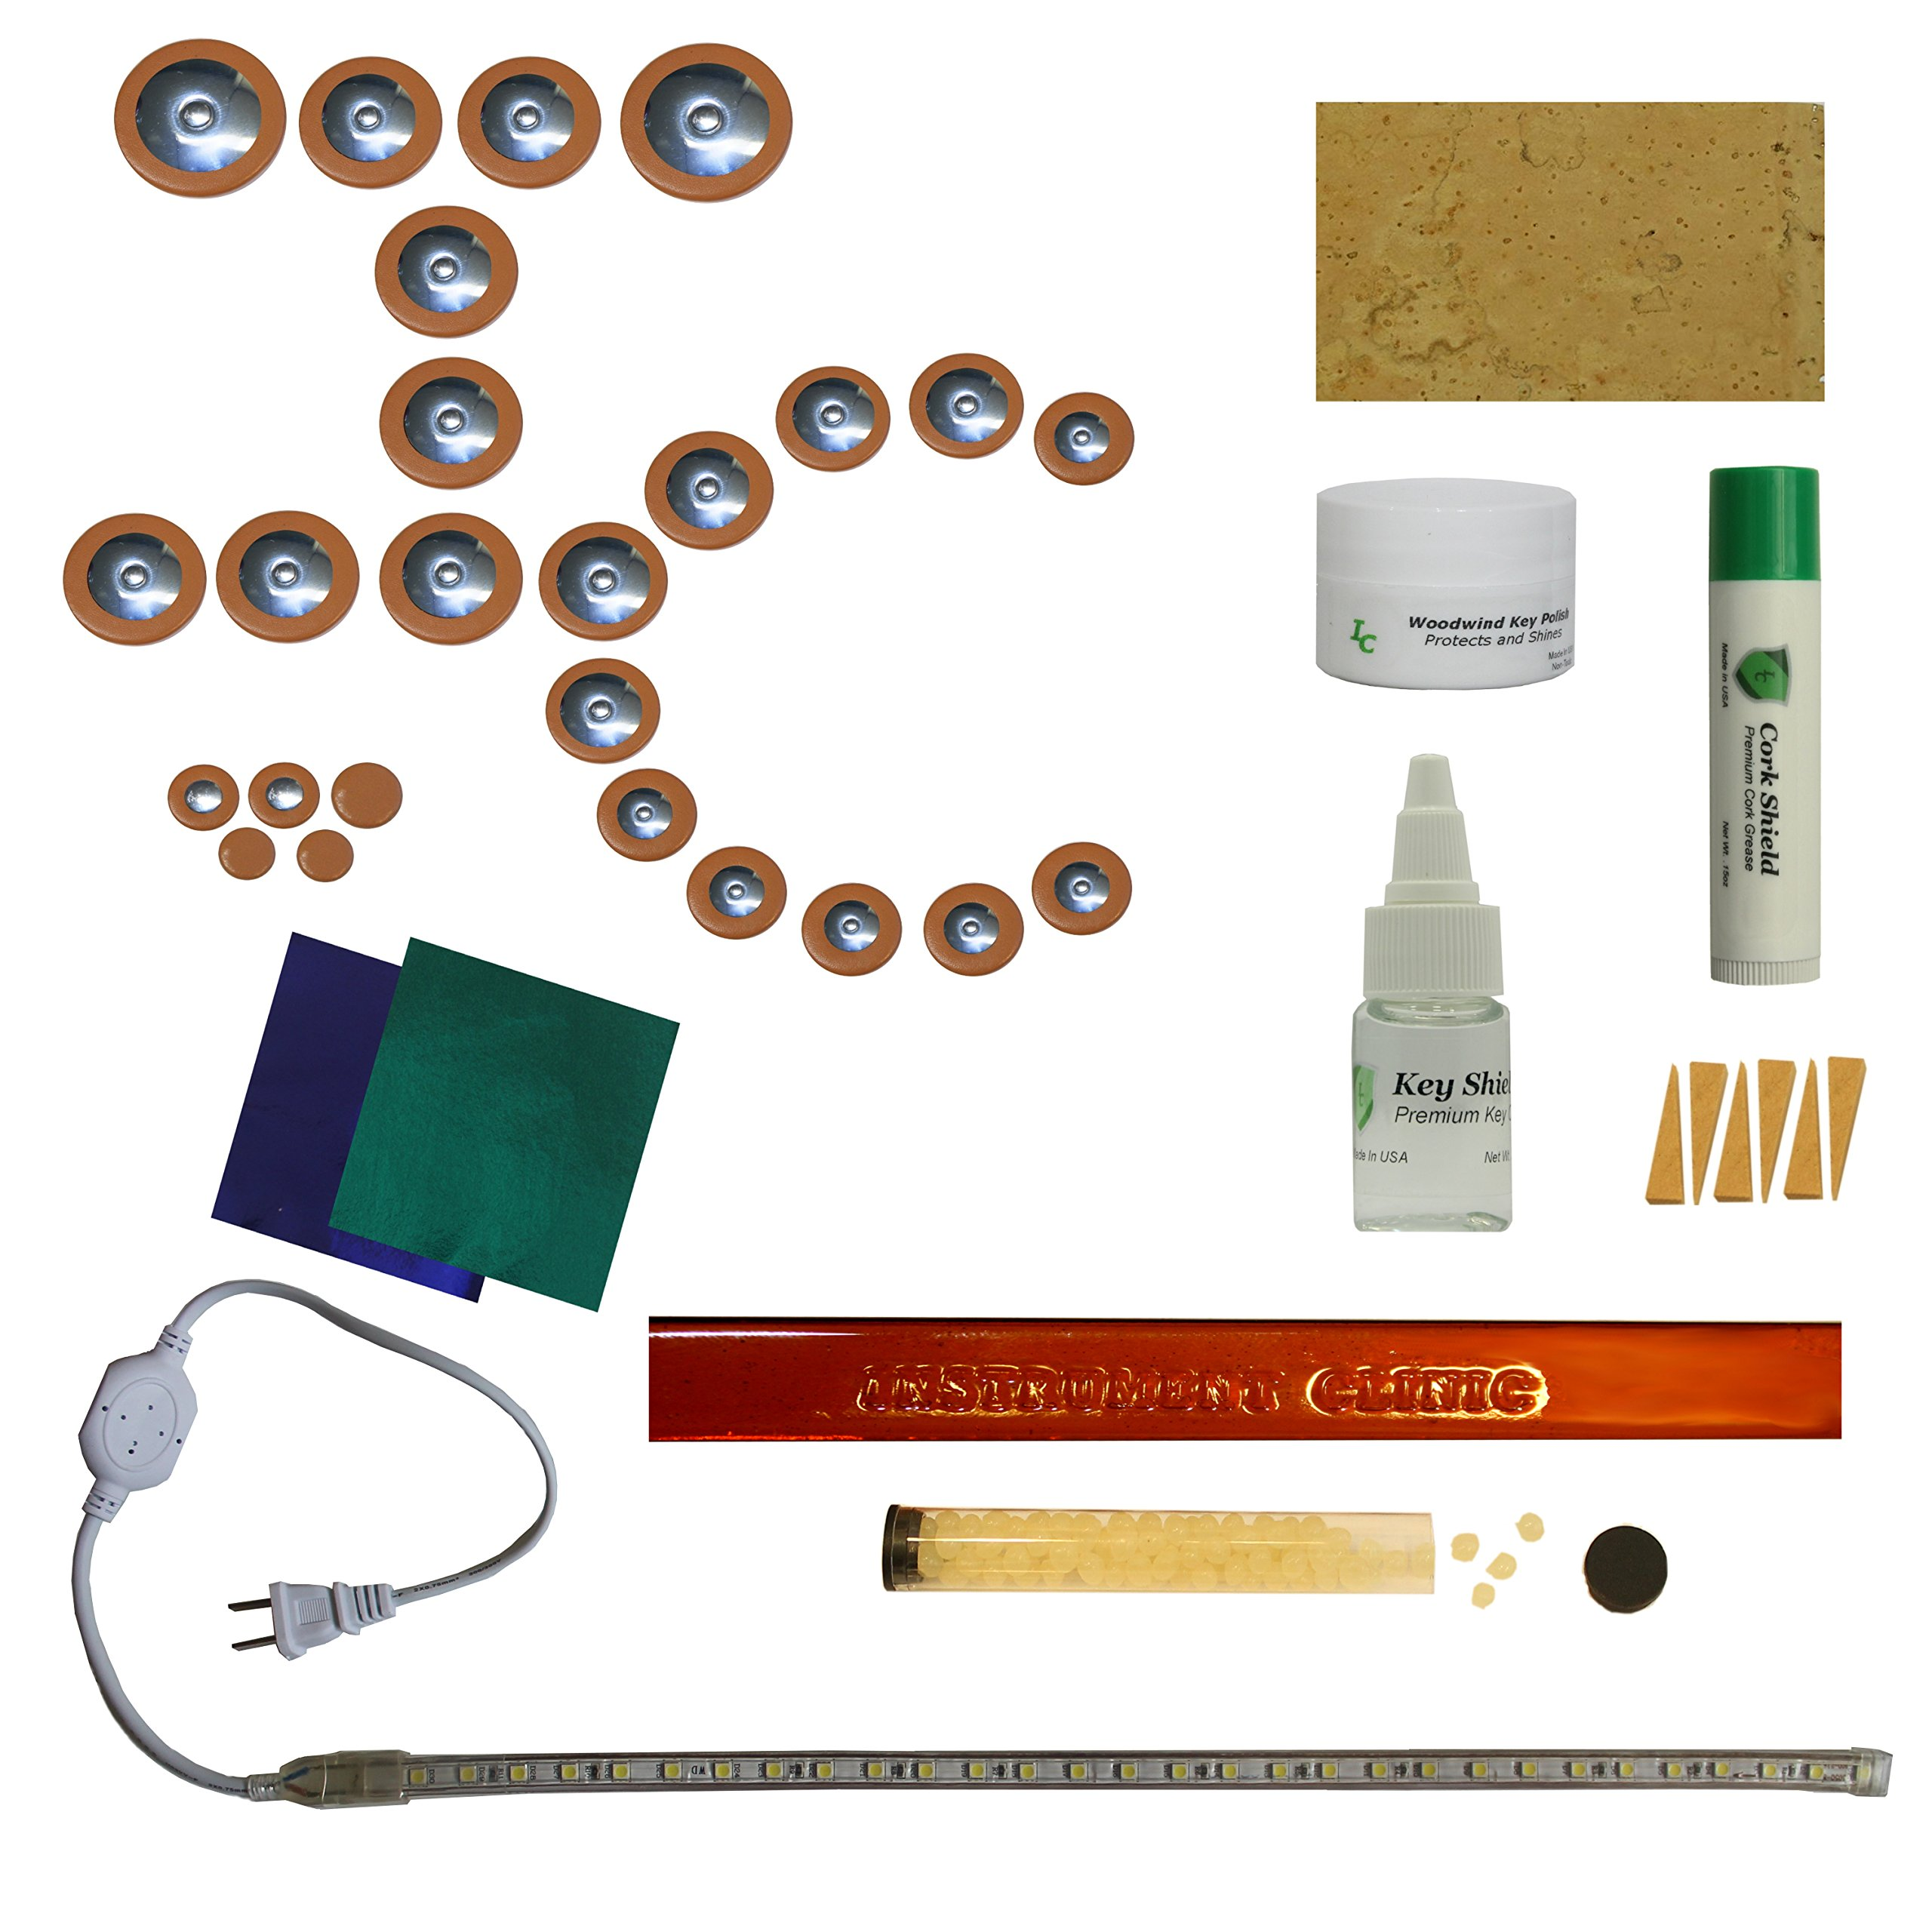 Instrument Clinic Alto Saxophone Pad Installation Kit, with Leak Light, Email Your Model!